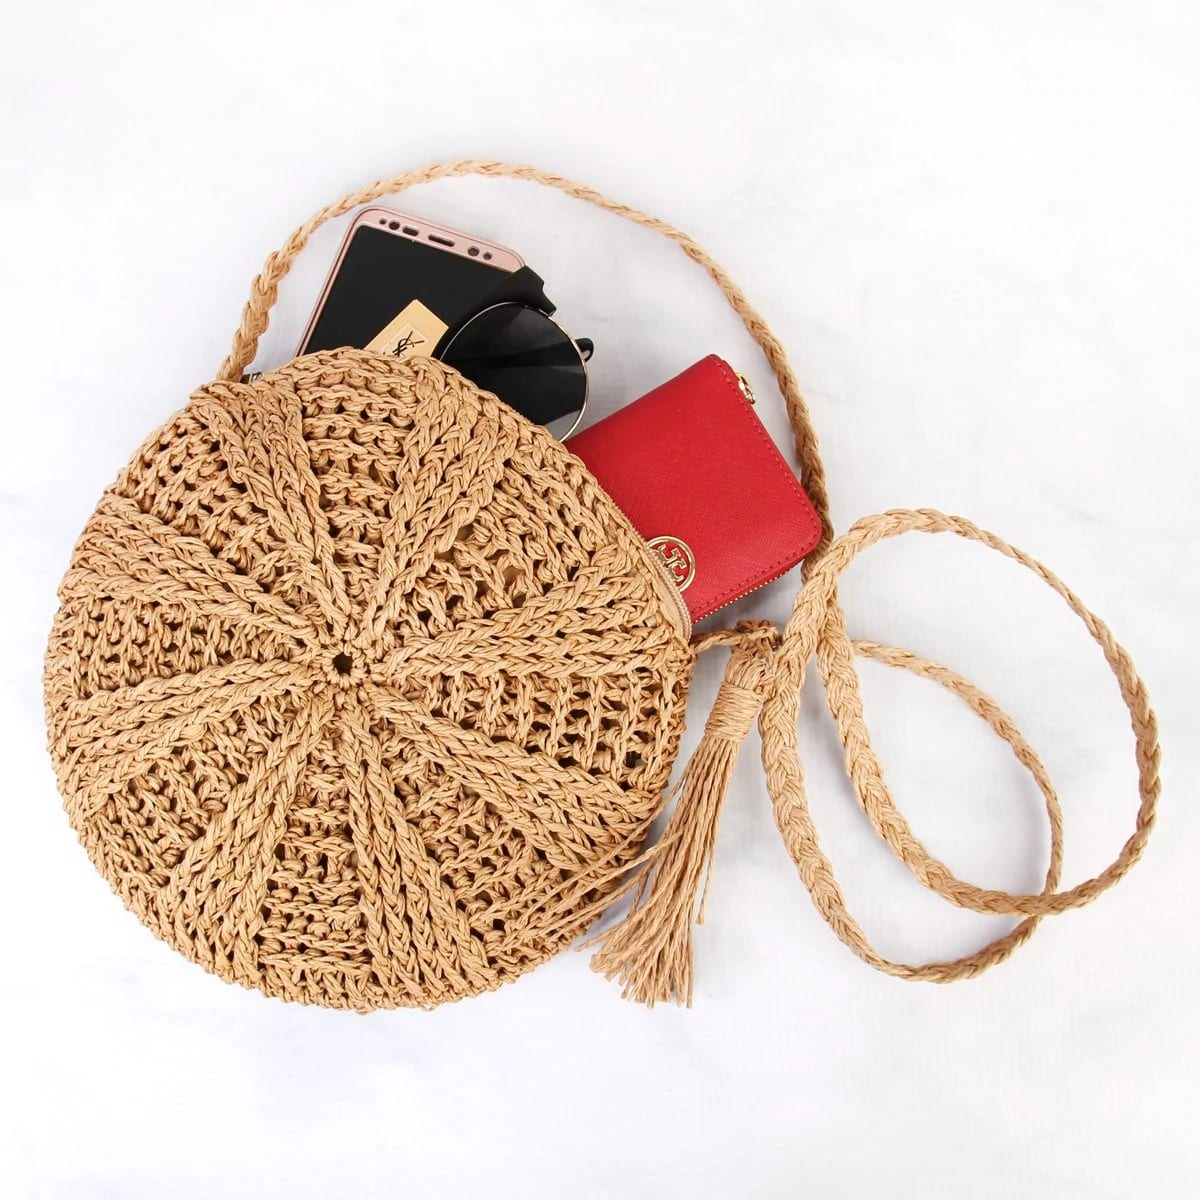 How many woven rattan bag better